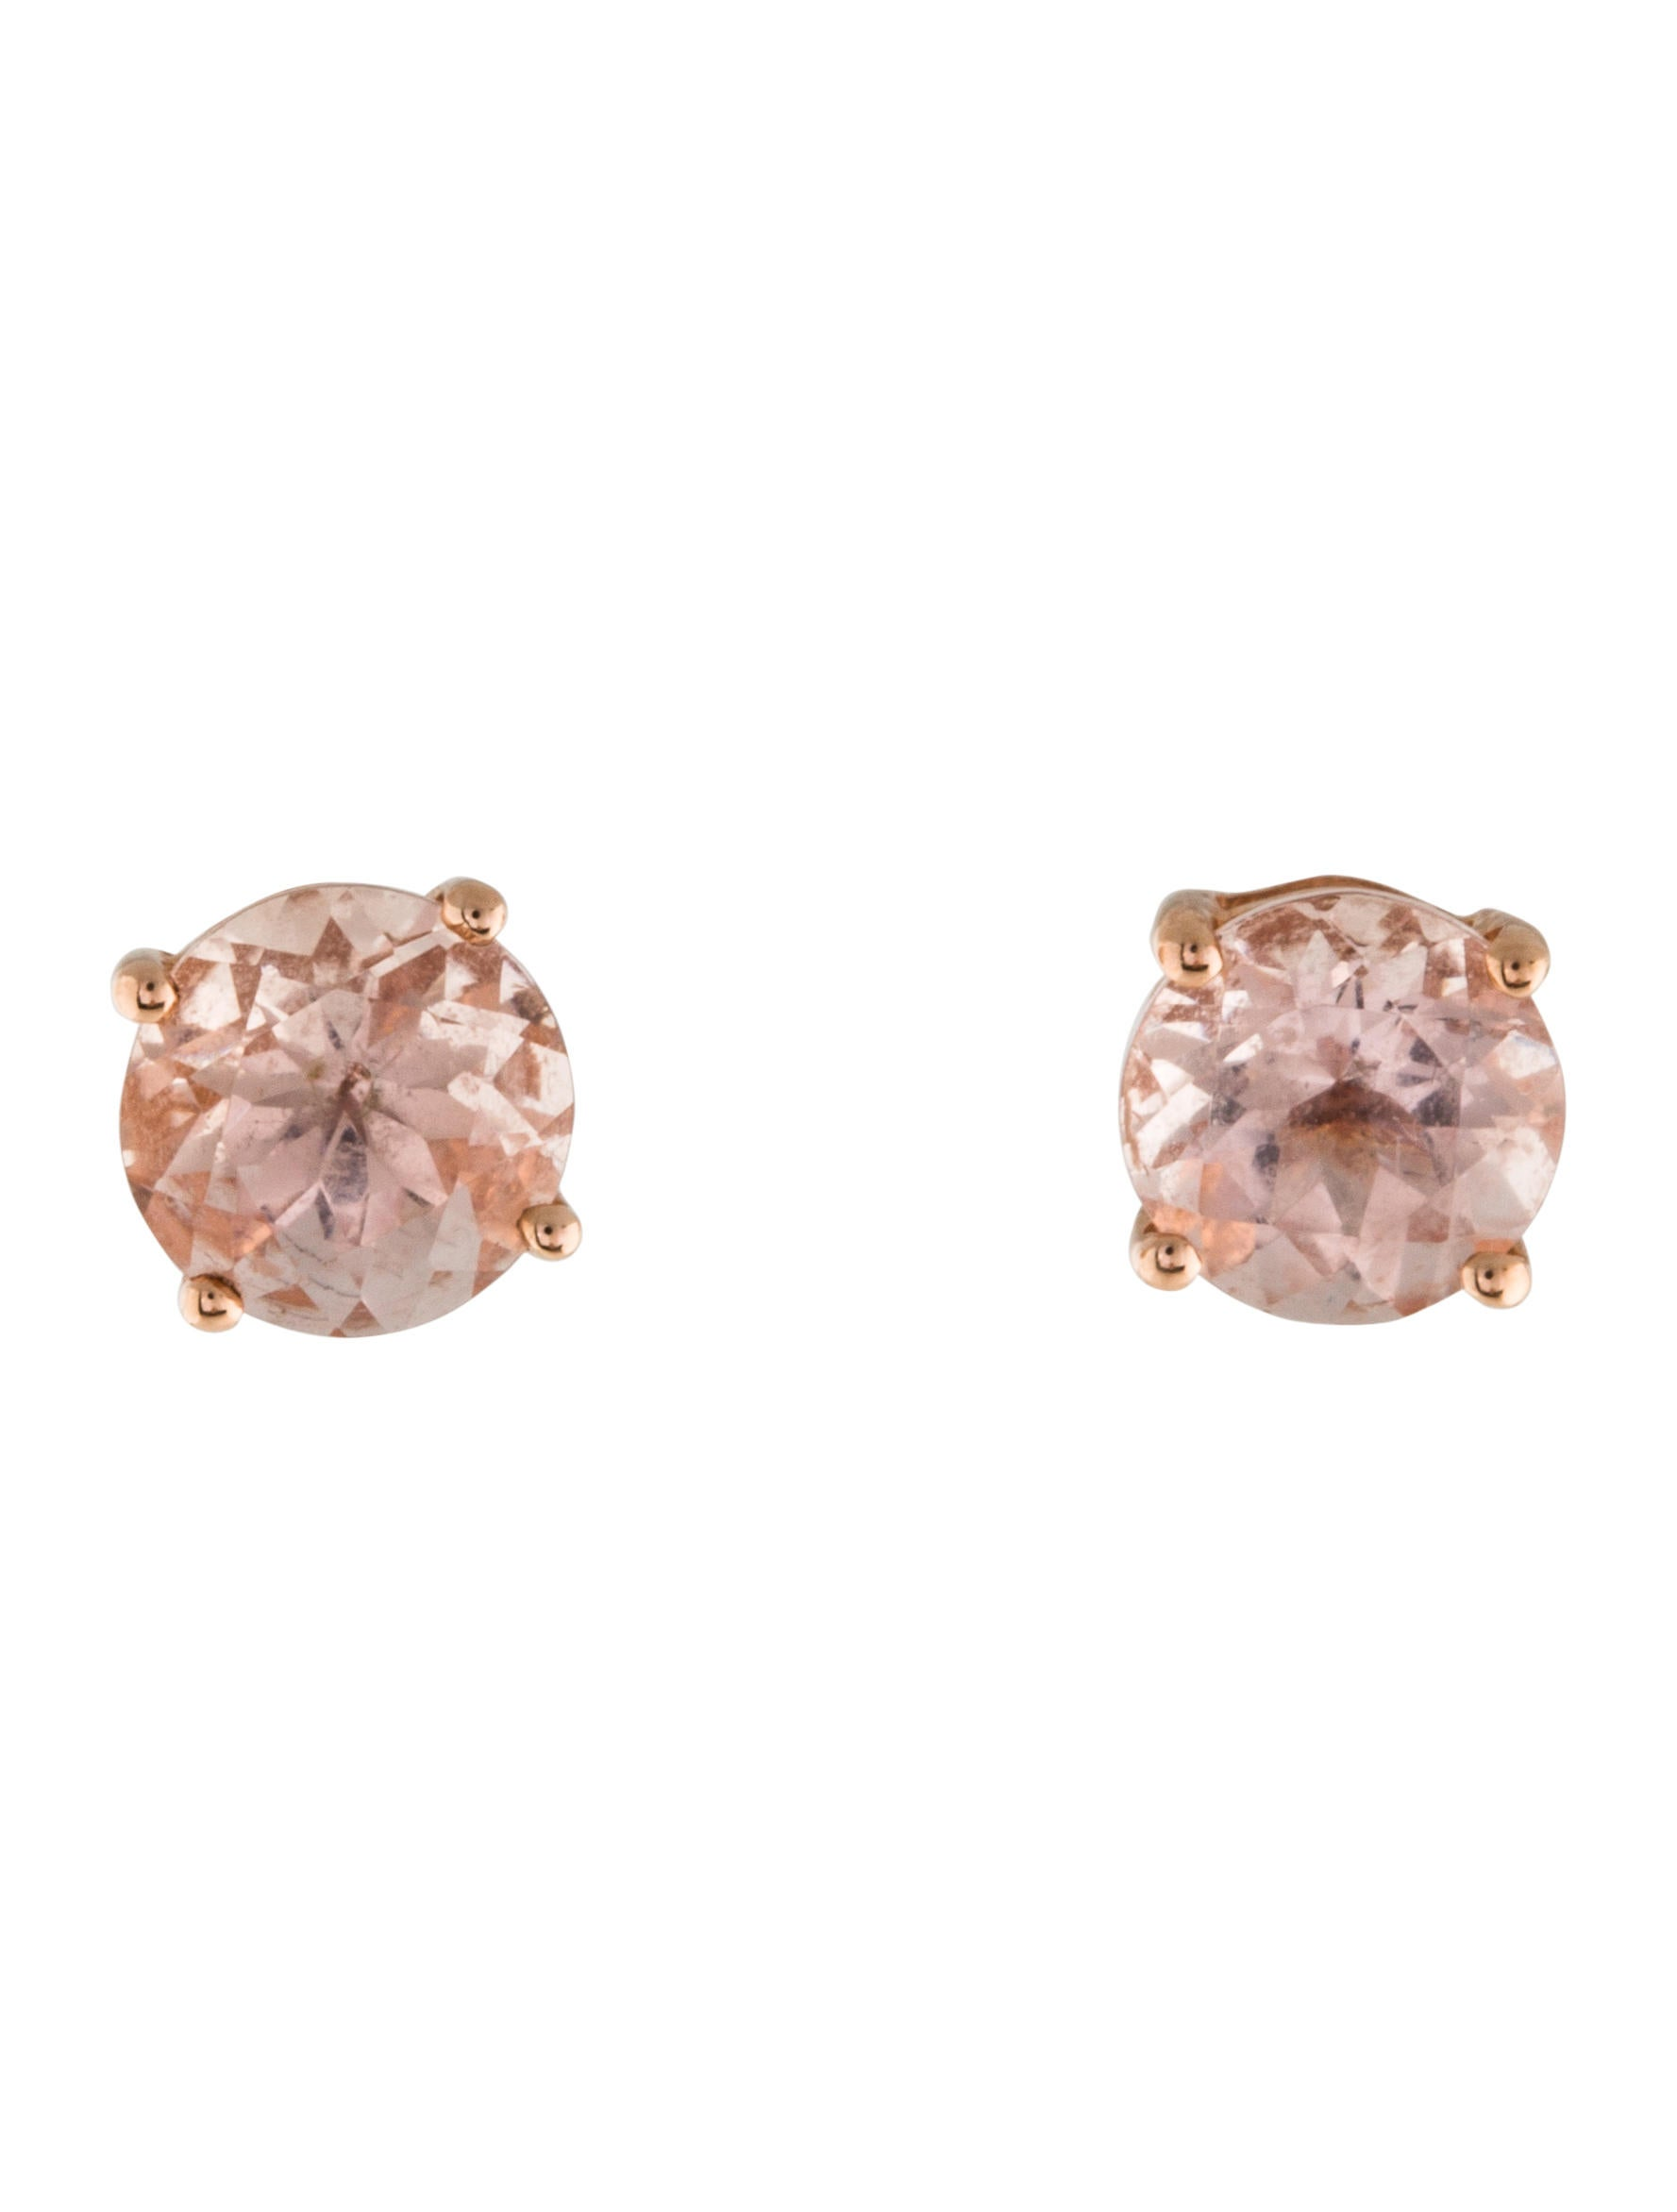 morganite earrings ebay stud aa gold yellow for ct in marropino p women